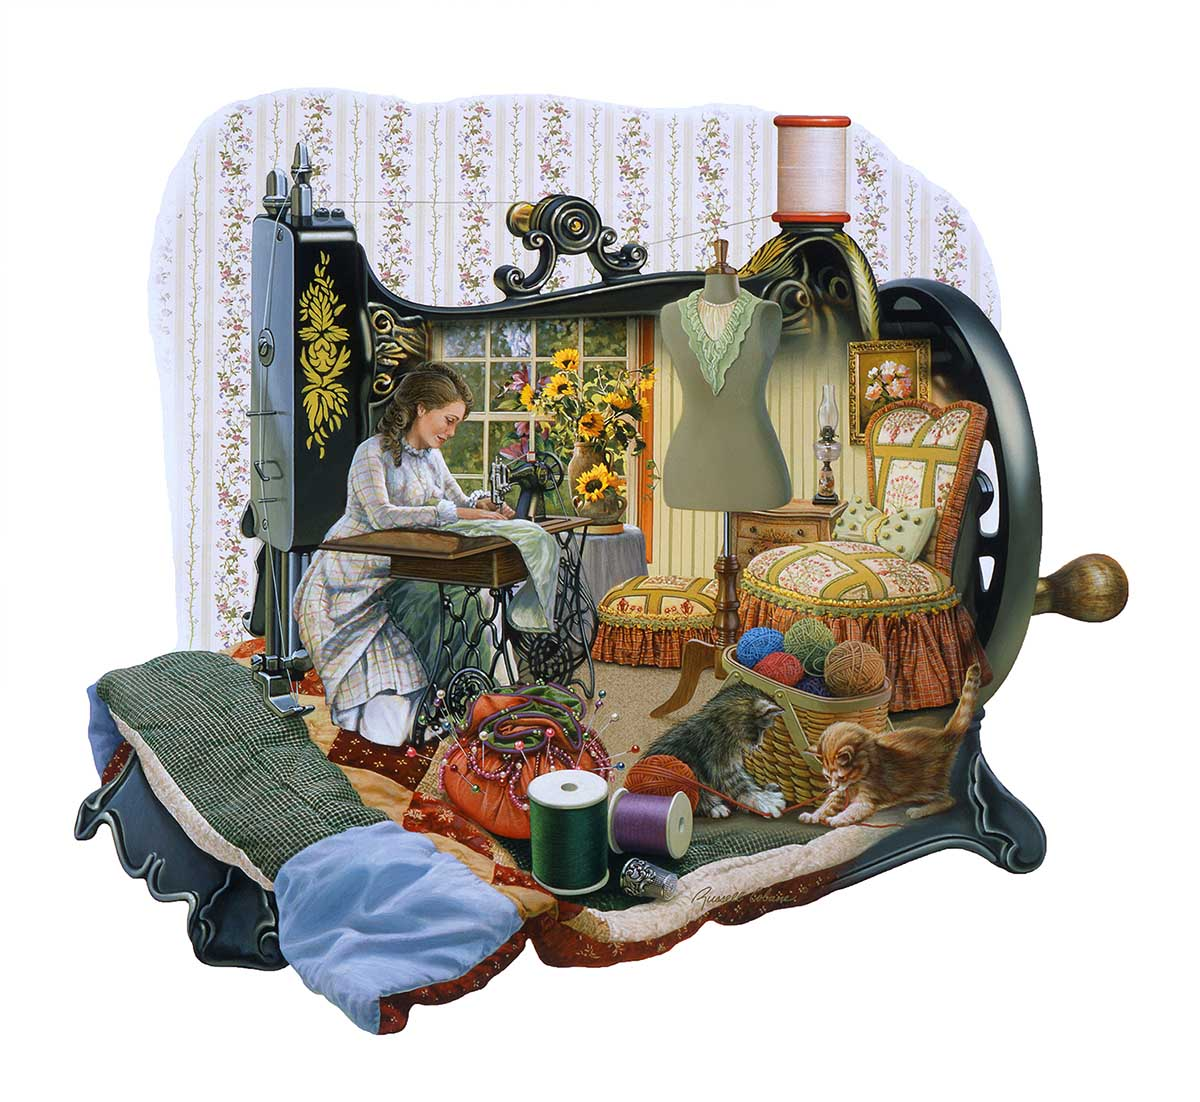 Sewing Memories Domestic Scene Shaped Puzzle